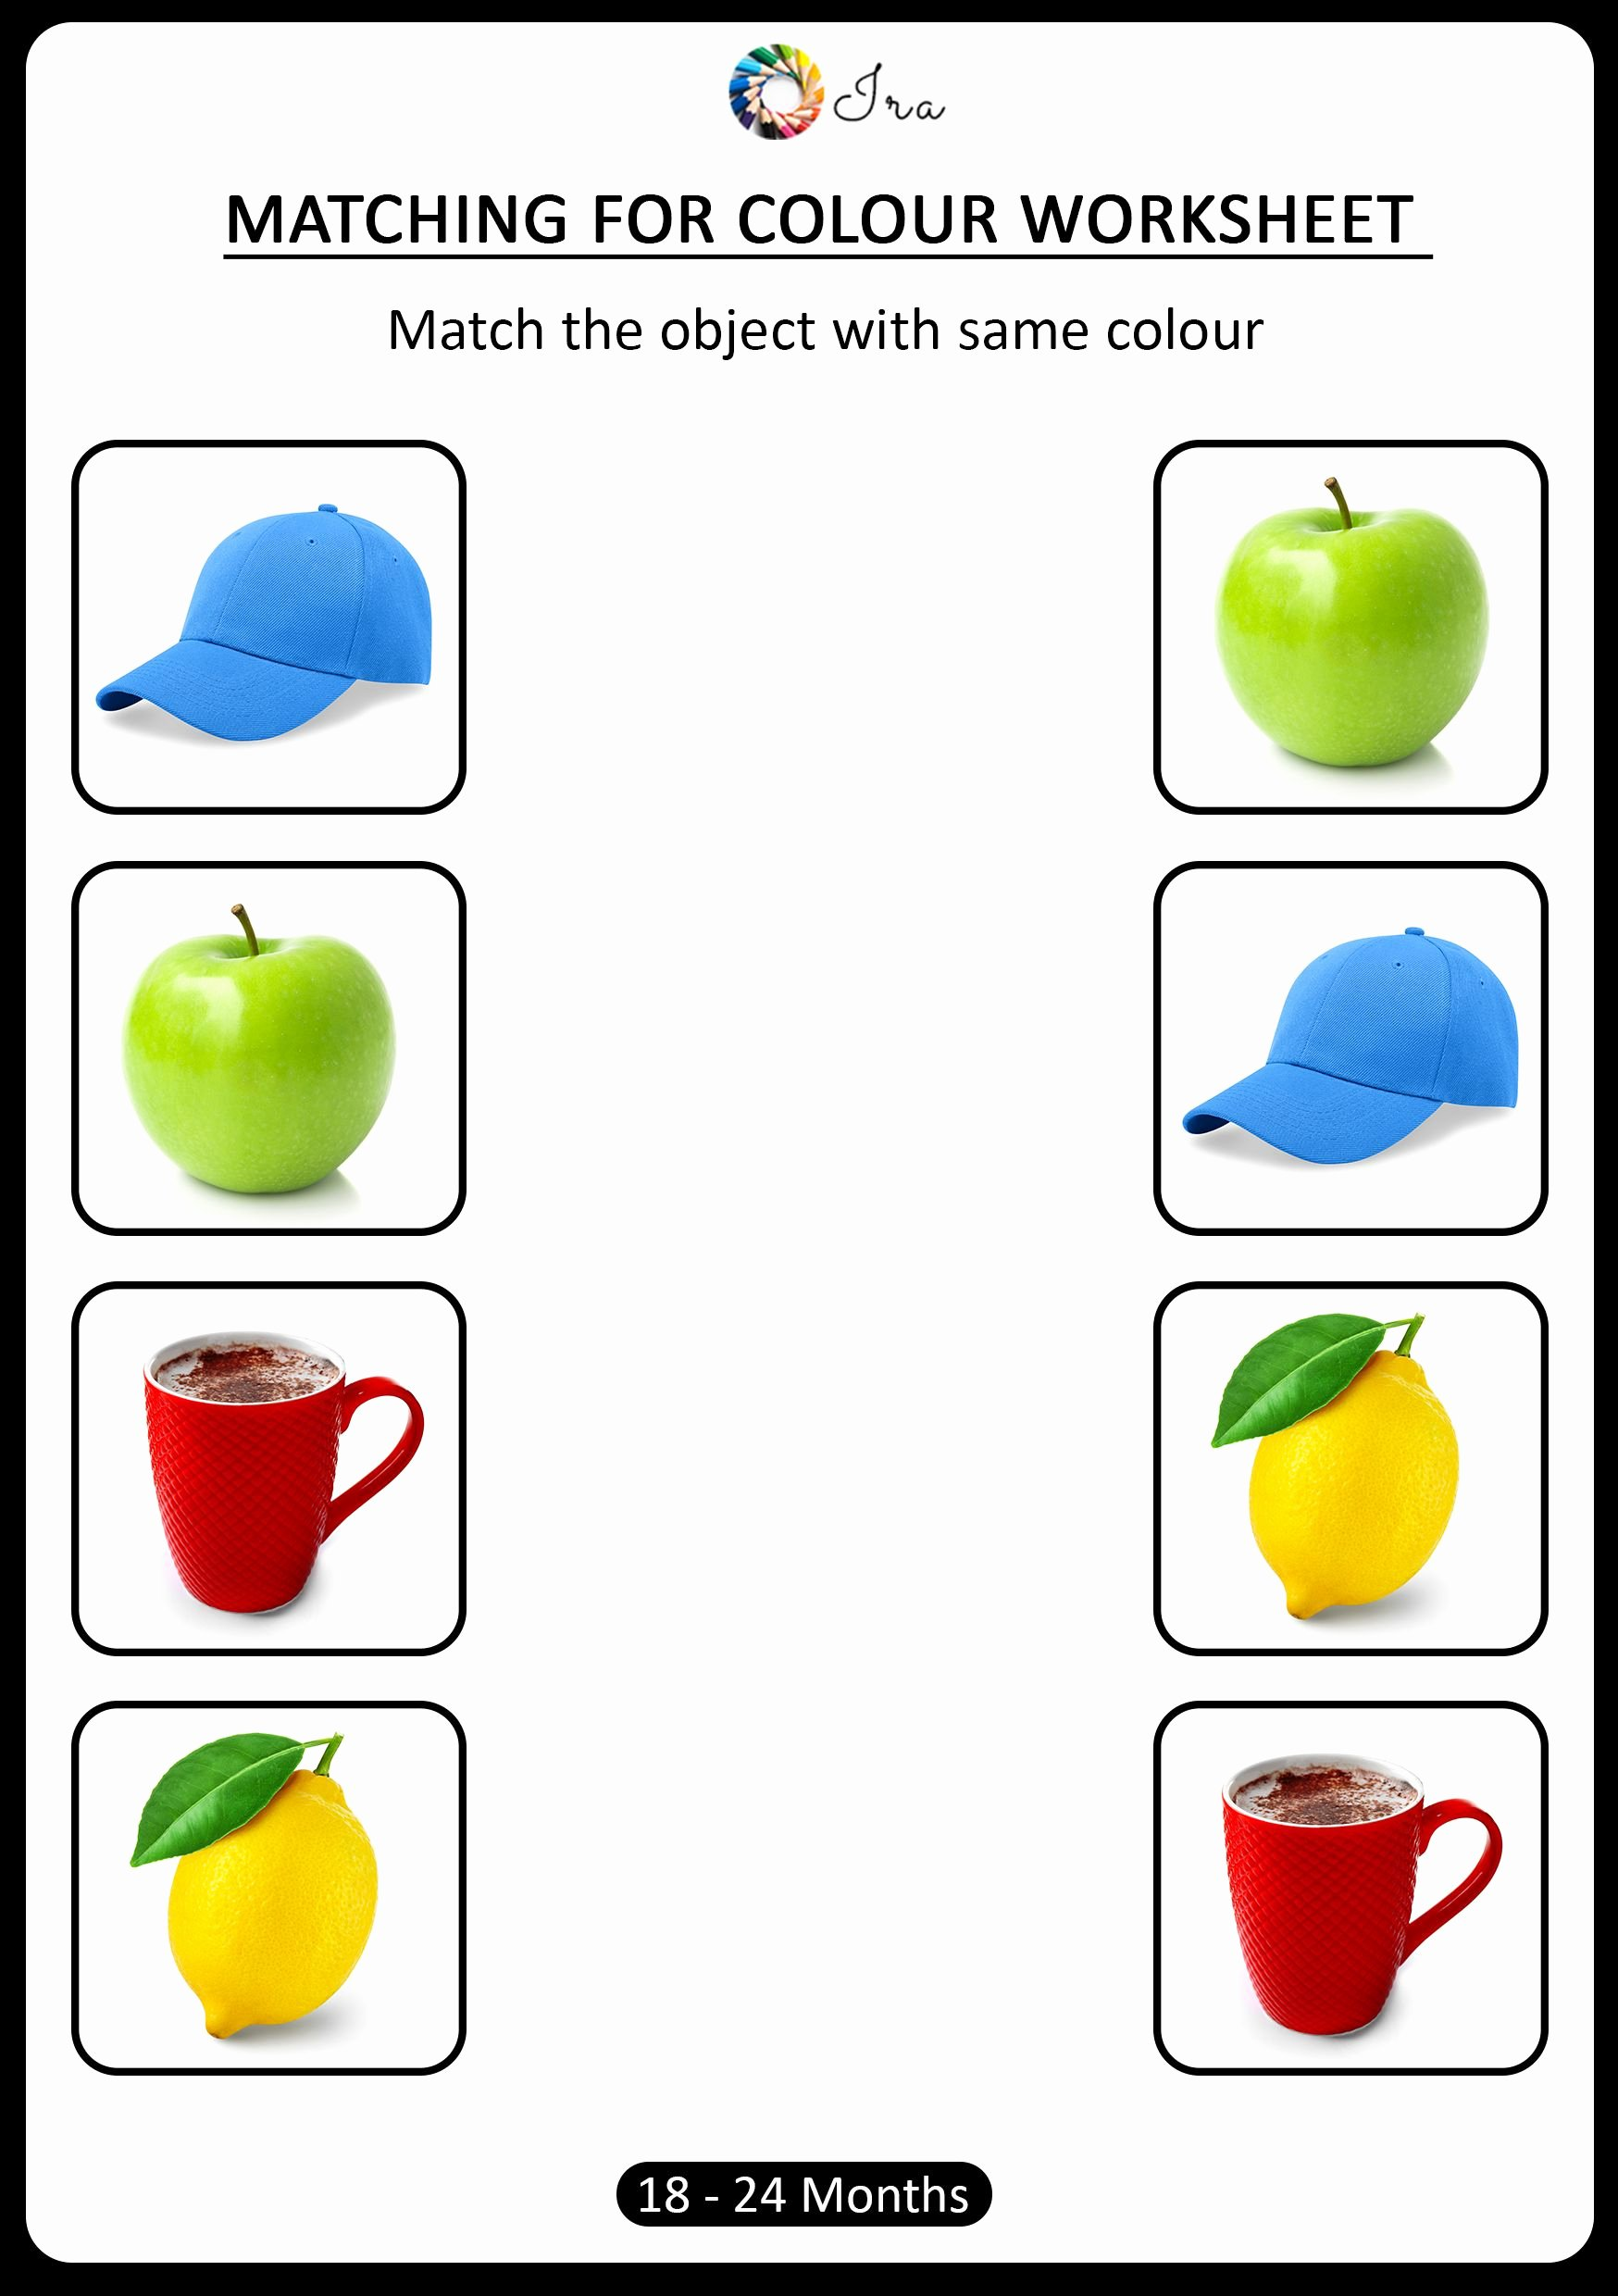 Matching Objects Worksheets for Preschoolers Lovely Pin On 4 De Kwartaal